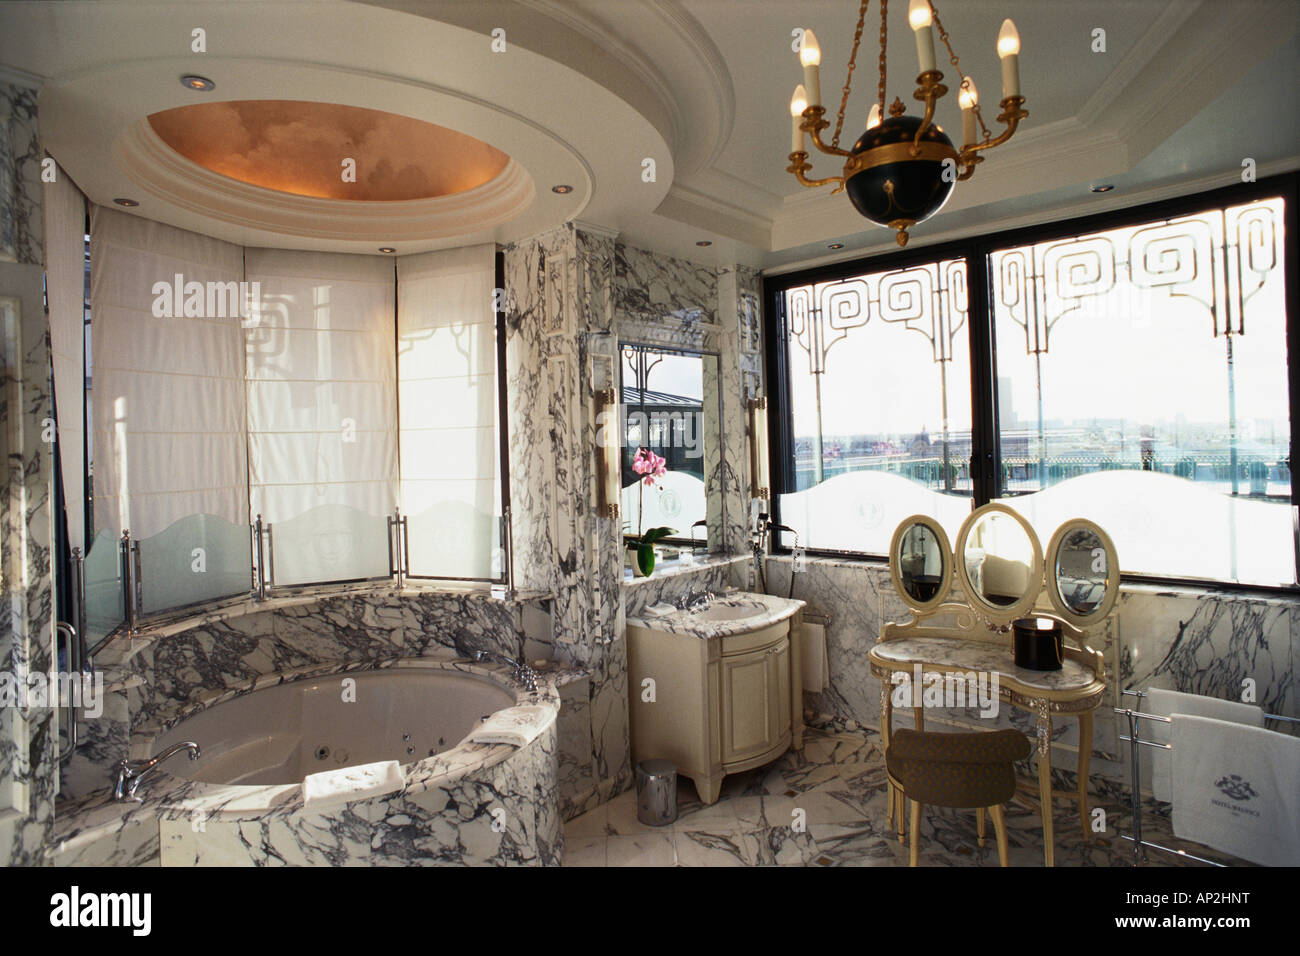 Luxury Bathrooms In Hotels marble bathroom suite and jacuzzi bath in suite la belle etoile